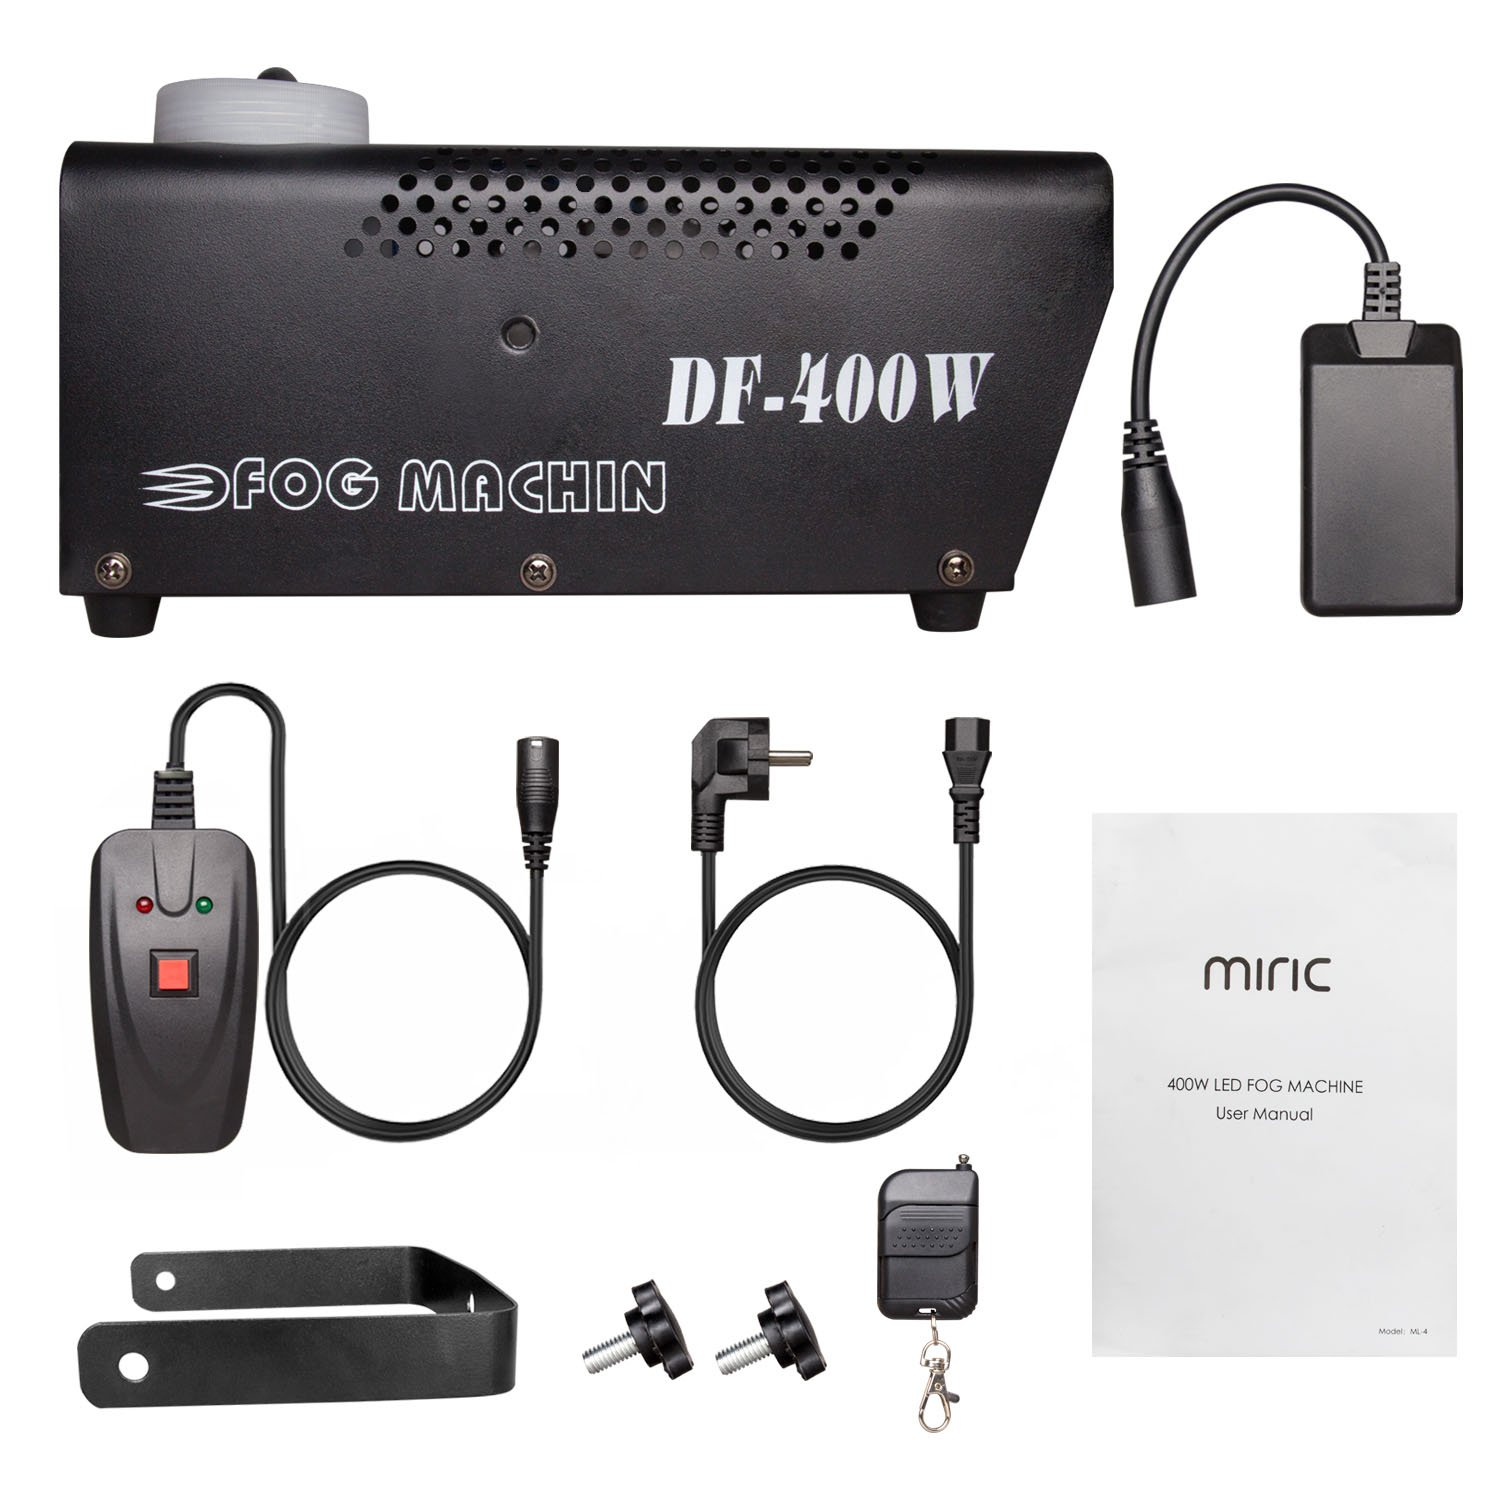 Fog Machine, Miric Smoke Machine Portable with LED Lights Equipped with Wired and Wireless Remote Control for Party, Christmas, Halloween and Weddings (400W) by Miric (Image #8)